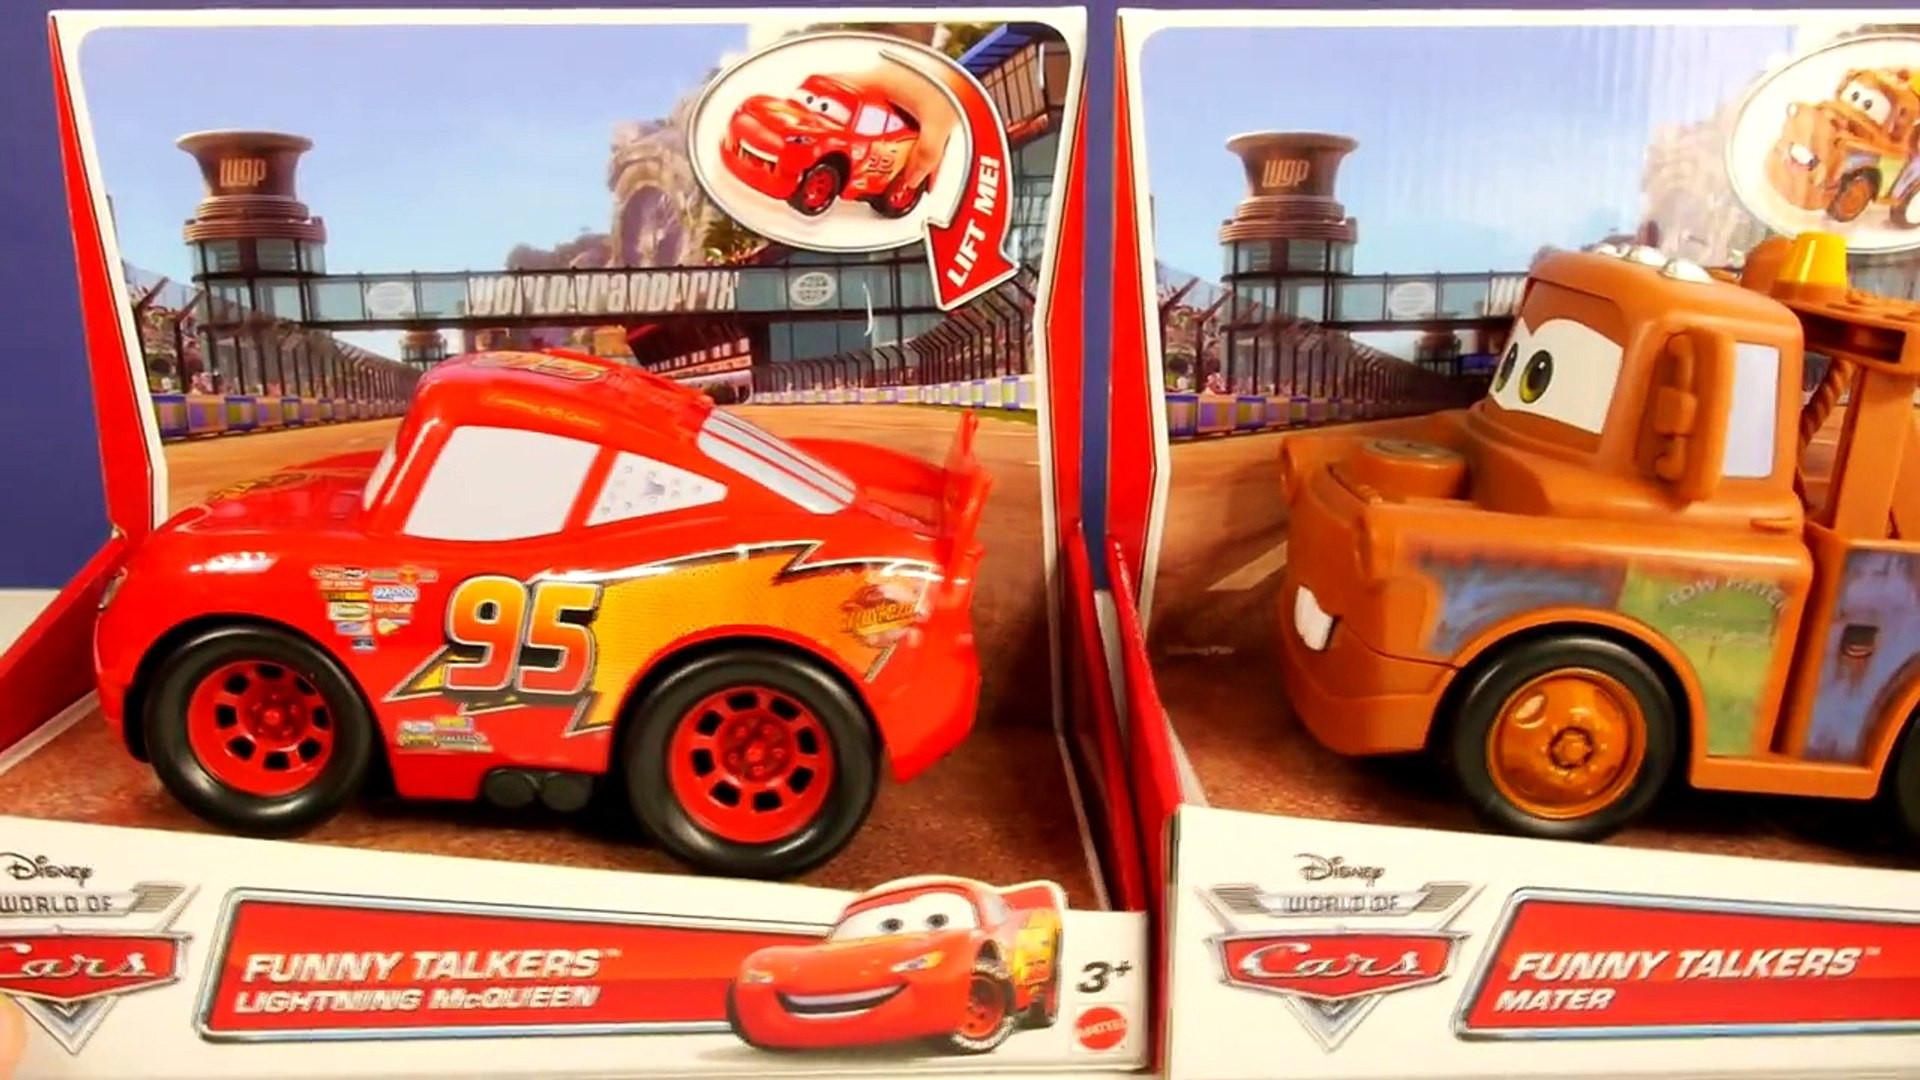 2014 Cars 2 Talking Lightning Mcqueen And Funny Talkers Mater Disney Pixar Cars Toys Video Dailymotion